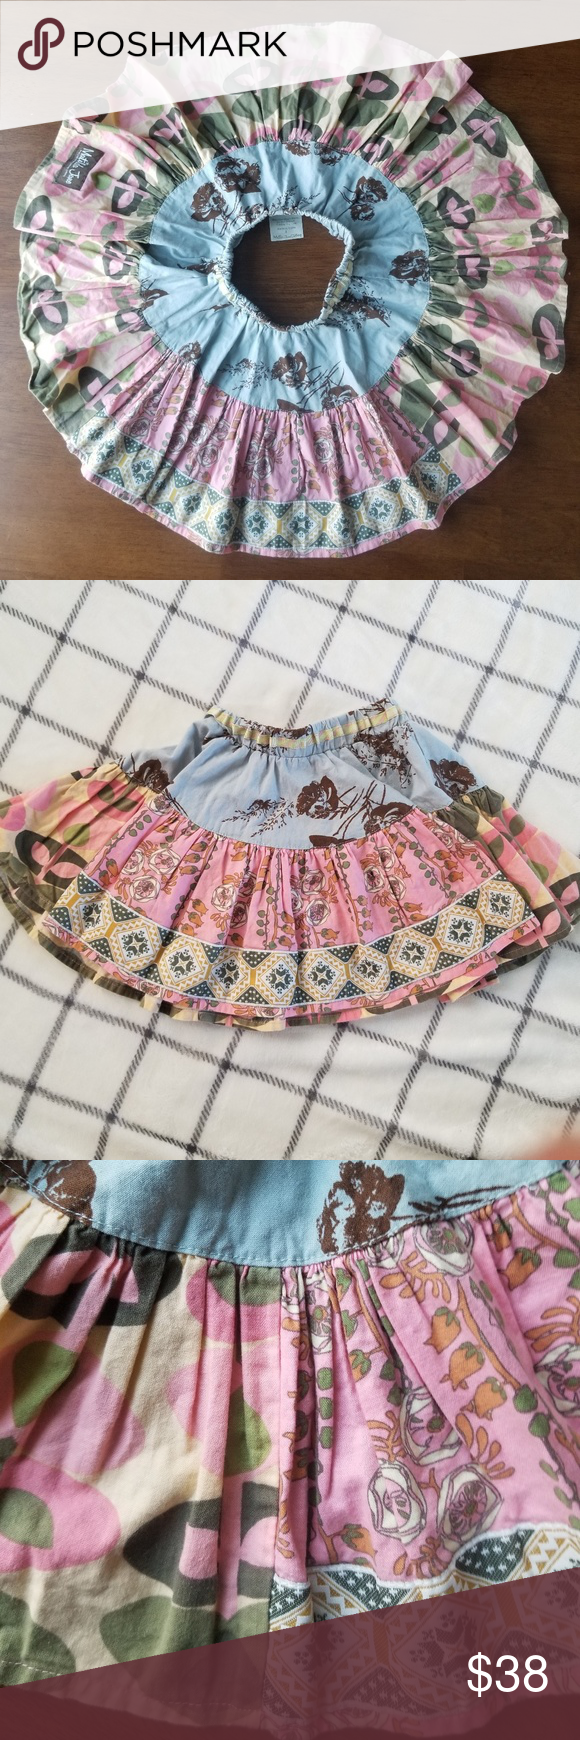 Adorable Matilda Jane Full Circle Twirl Skirt Sz 4 Hours of twirling potential!   Very good pre-owned condition. Matilda Jane Bottoms Skirts #twirlskirt Adorable Matilda Jane Full Circle Twirl Skirt Sz 4 Hours of twirling potential!   Very good pre-owned condition. Matilda Jane Bottoms Skirts #twirlskirt Adorable Matilda Jane Full Circle Twirl Skirt Sz 4 Hours of twirling potential!   Very good pre-owned condition. Matilda Jane Bottoms Skirts #twirlskirt Adorable Matilda Jane Full Circle Twirl S #twirlskirt